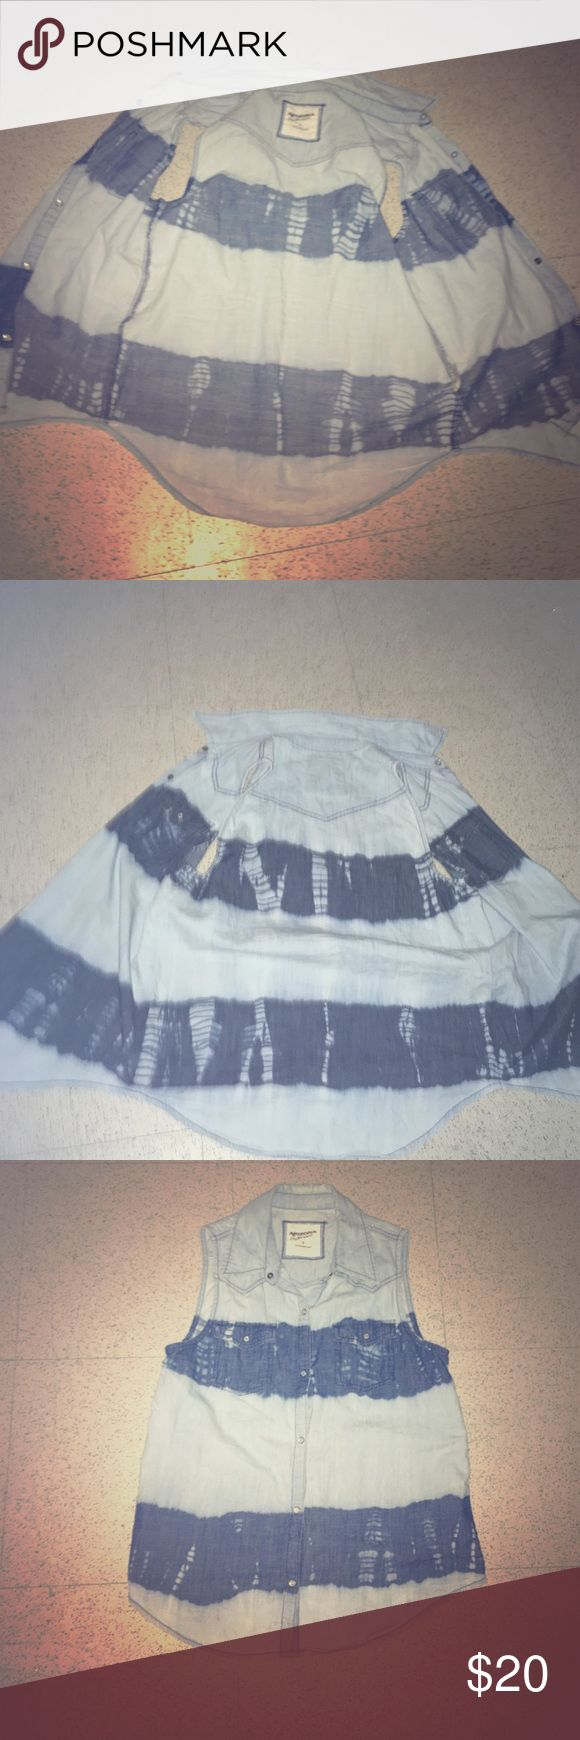 Tye dye Sleeveless denim shirt It is light blue and dark blue it can be buttoned up and has cute little pockets. Great for the summer time. Arizona Jean Company Tops Button Down Shirts